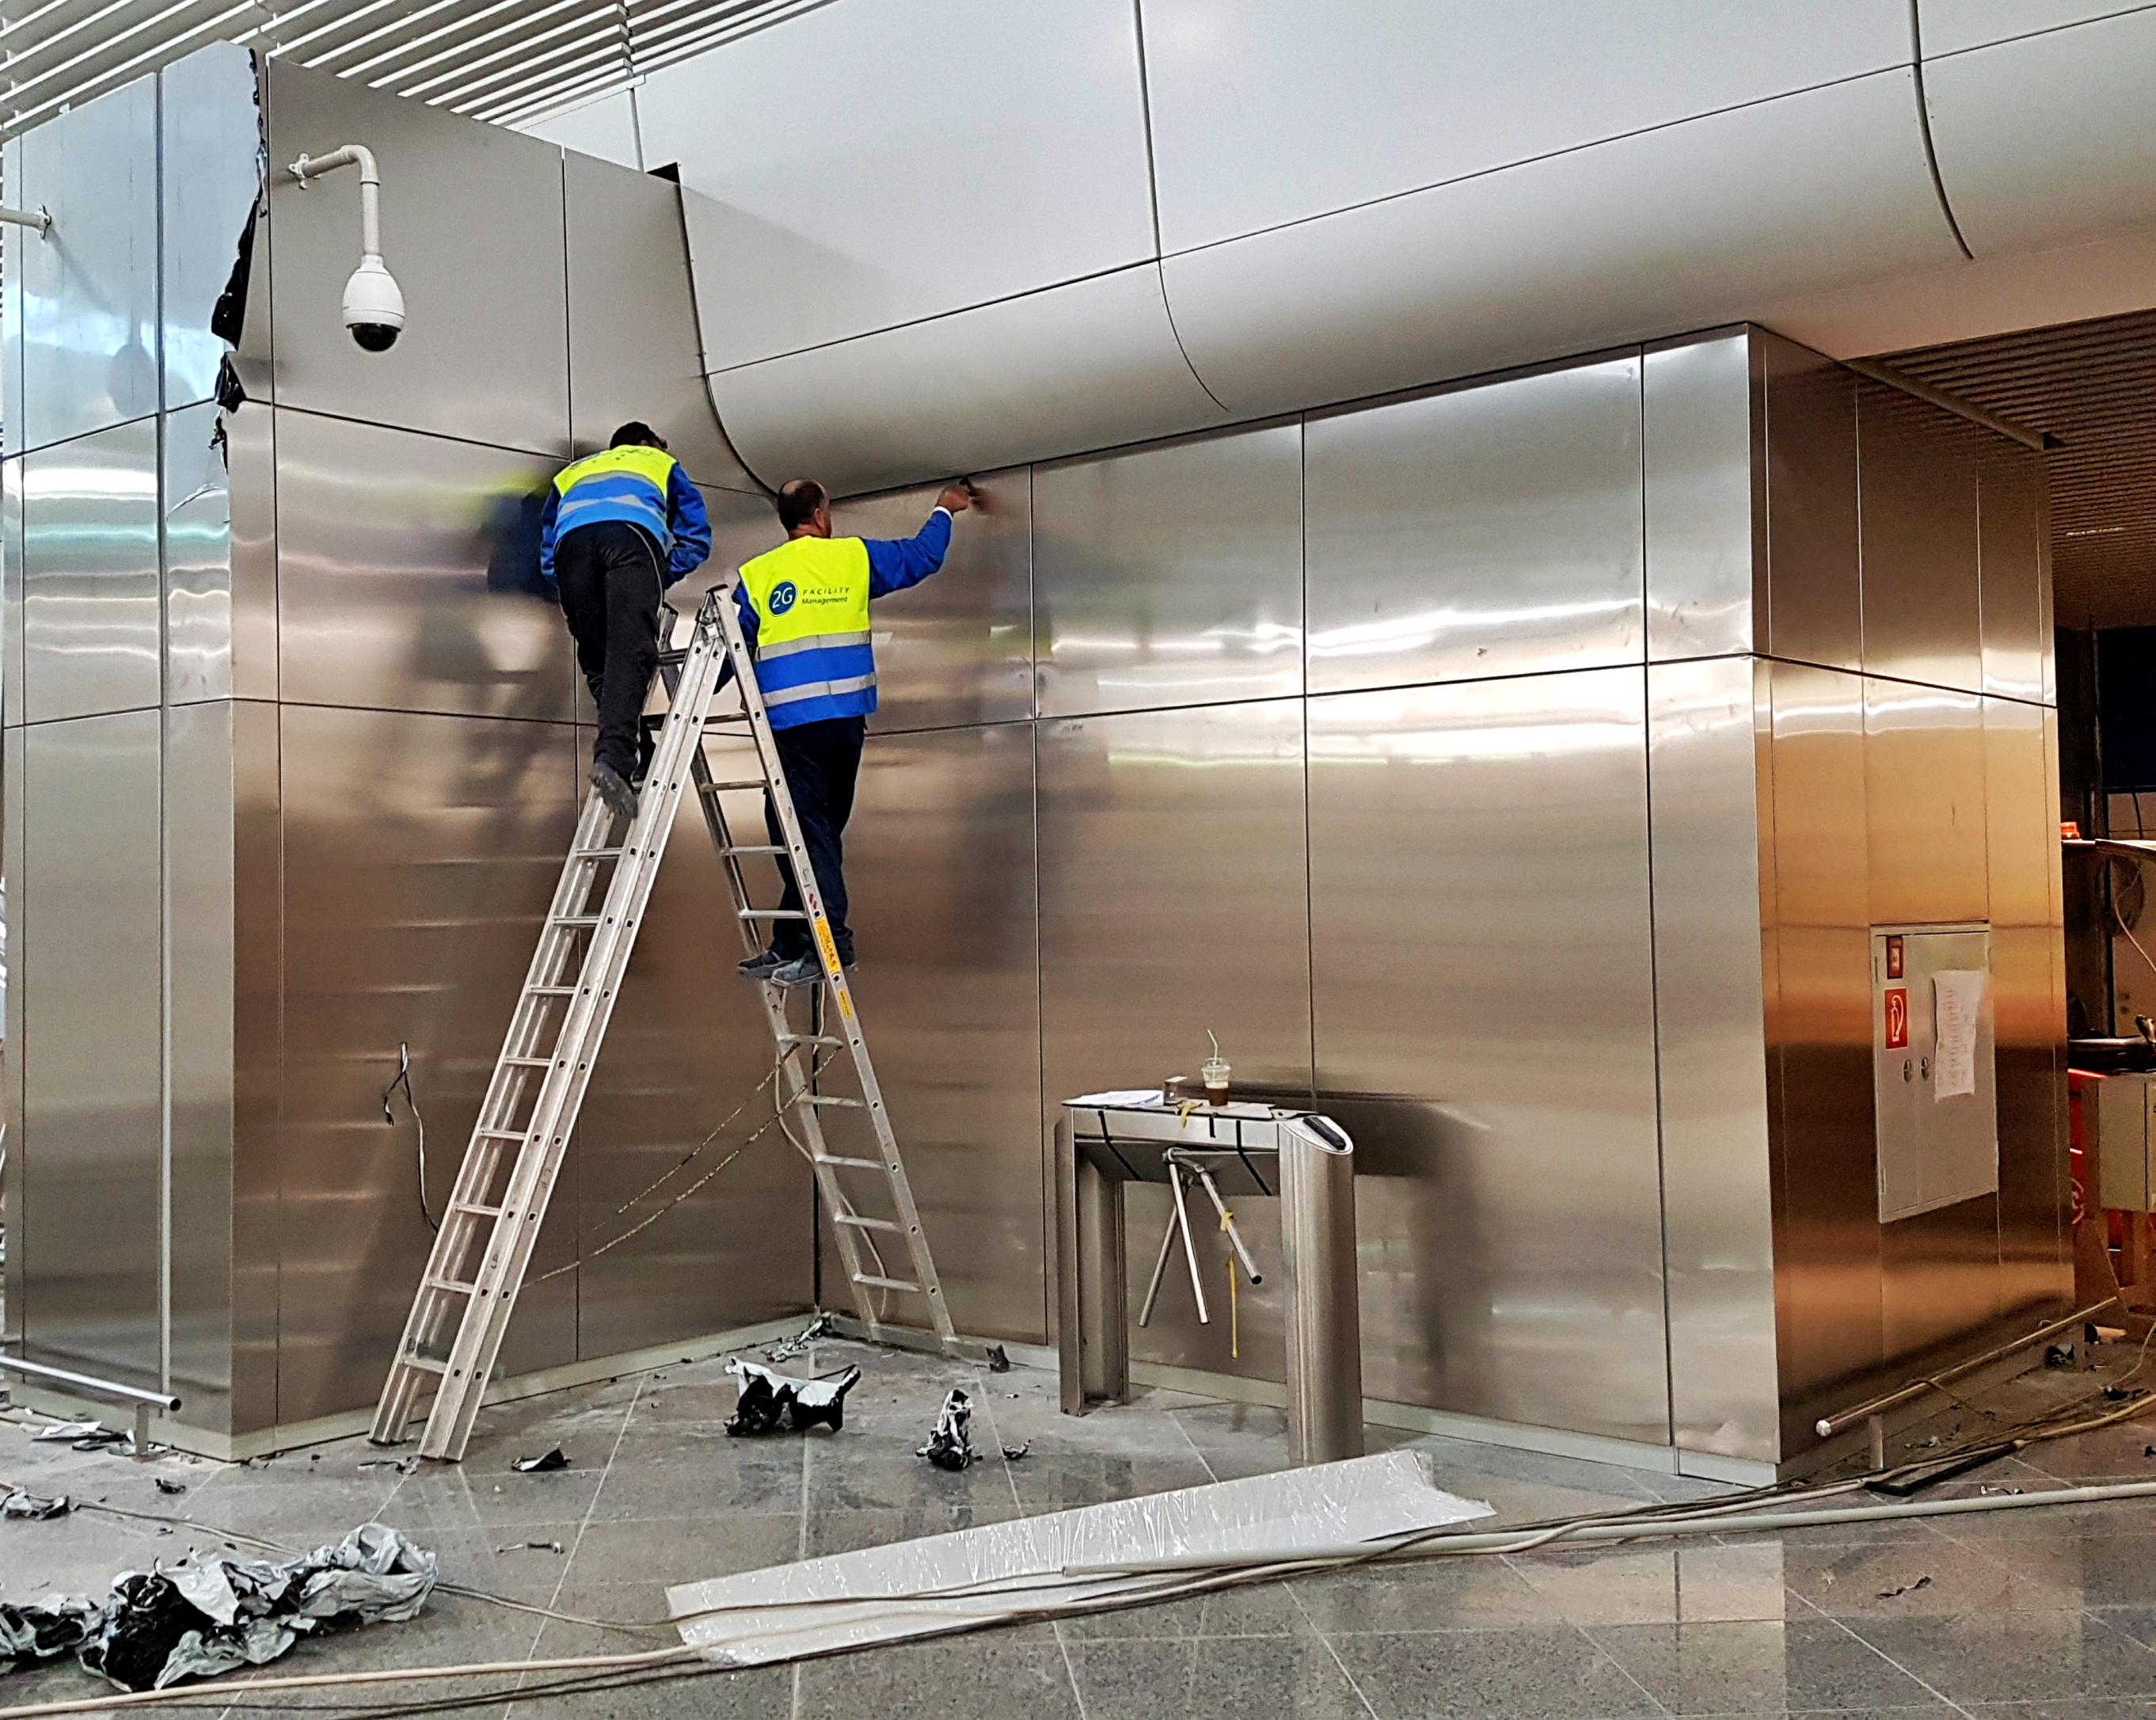 stavrianos_stainless_steel_wall_cladding_panels_in_athens_international_airport